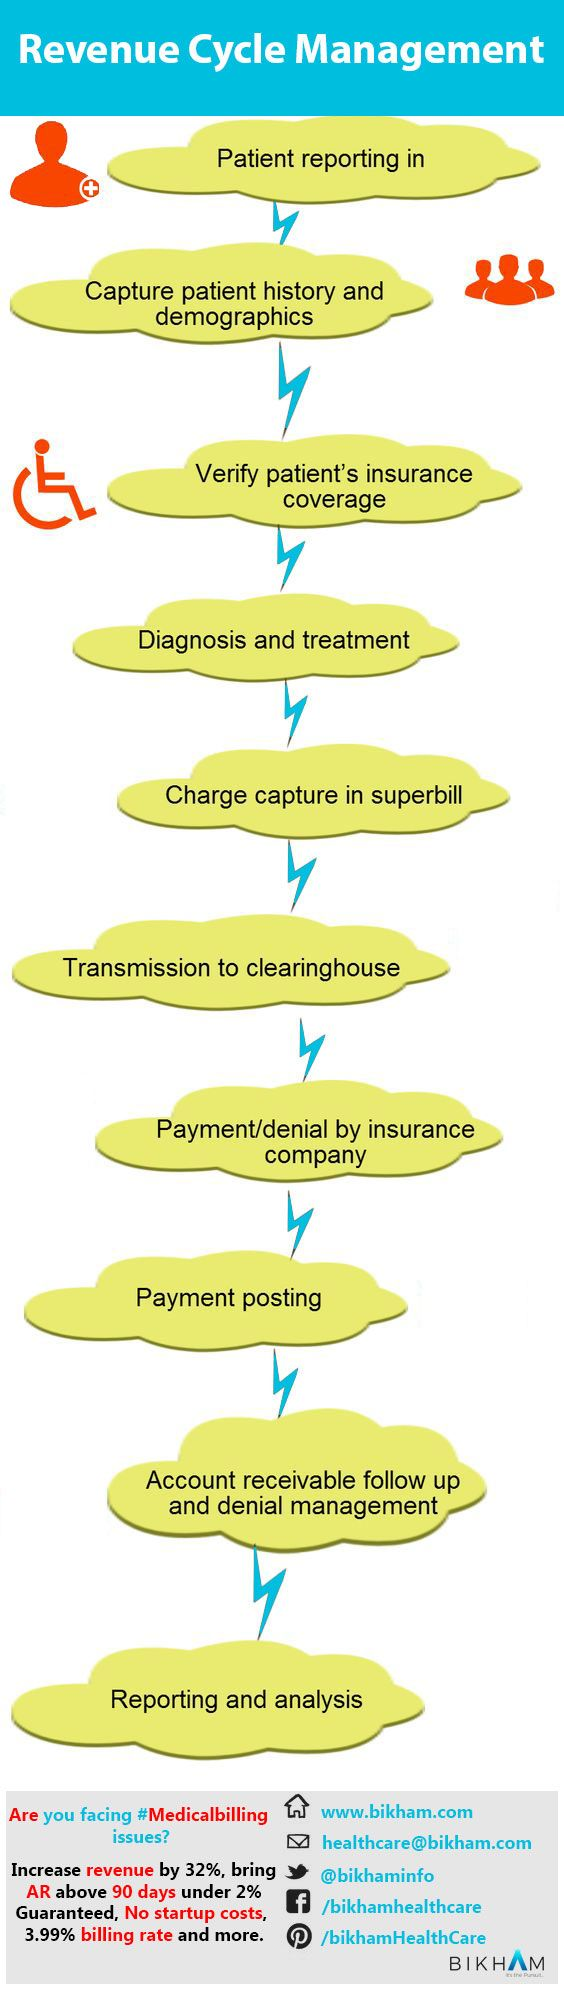 hight resolution of learn how revenue cycle management flow chart work here are main rcm revenue cycle management steps patient pre authorization eligibility benefits